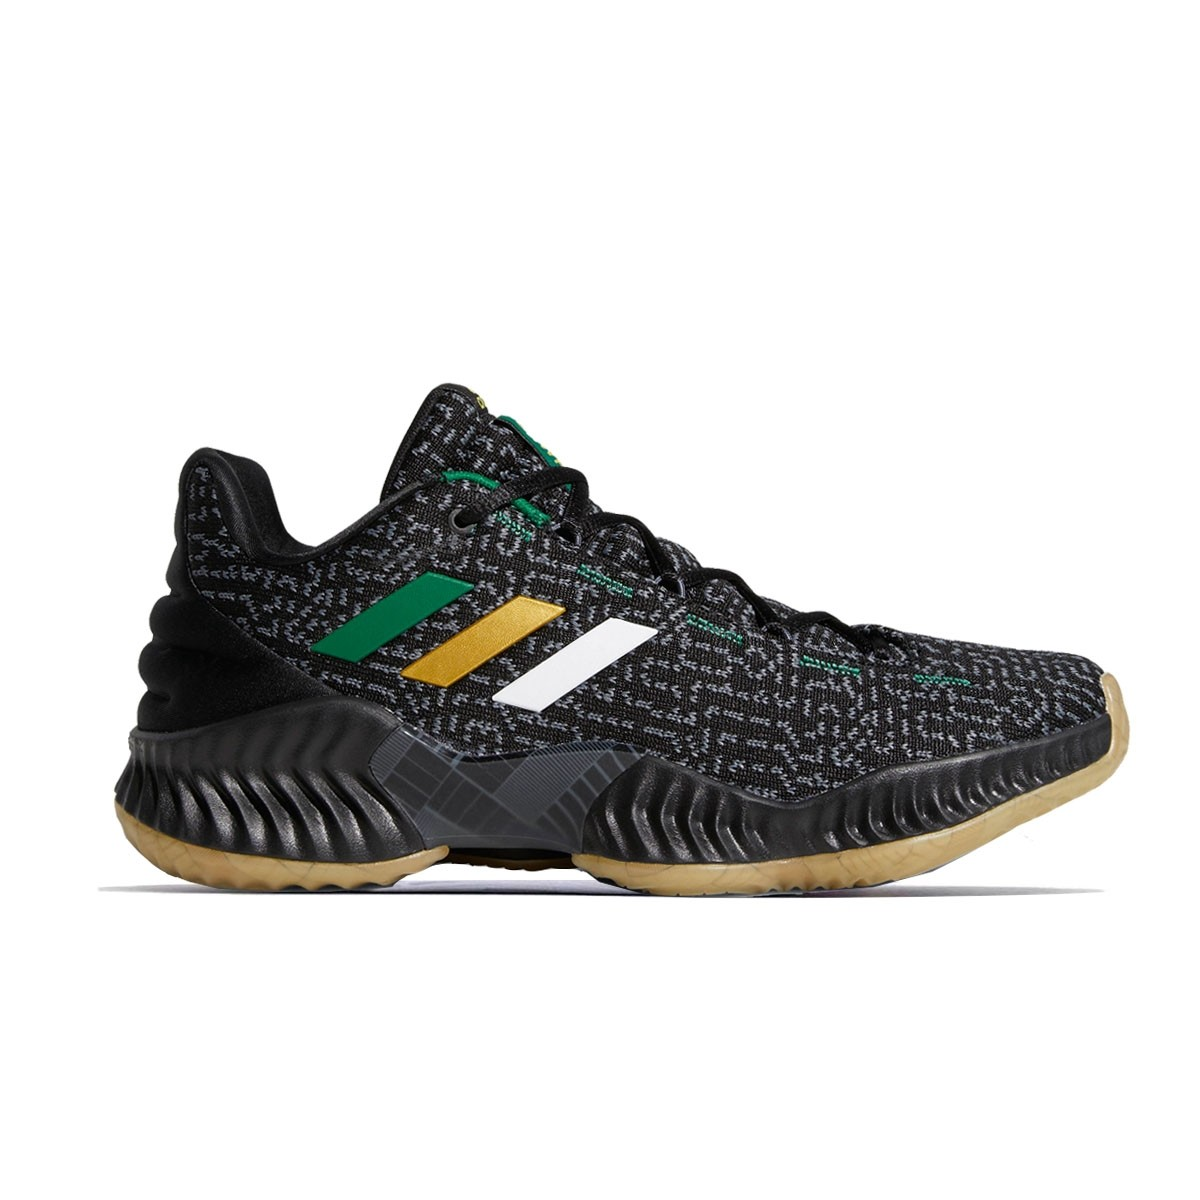 ADIDAS Pro Bounce Low 'Jaylen Brown'